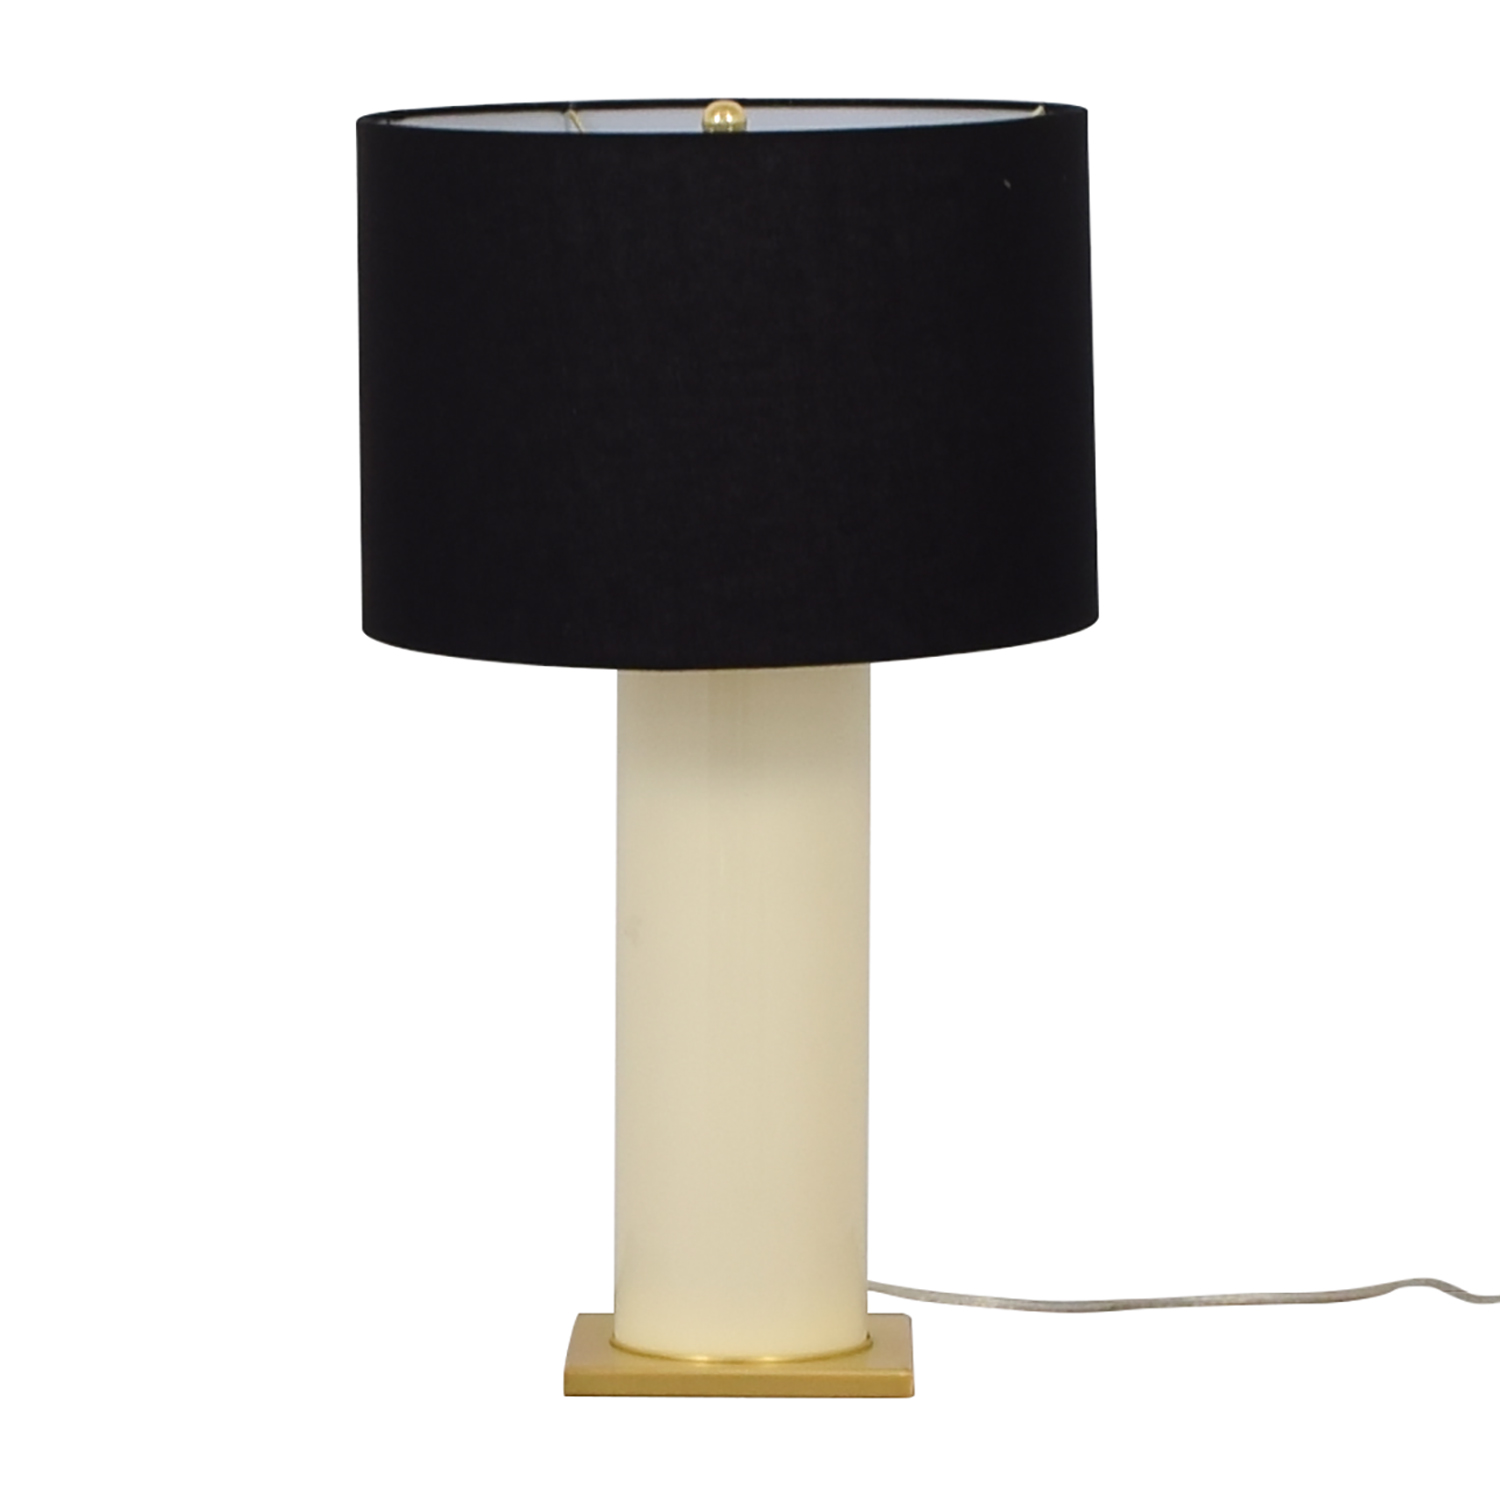 Kate Spade Kate Spade Black Gold and Creme Table Lamp Decor